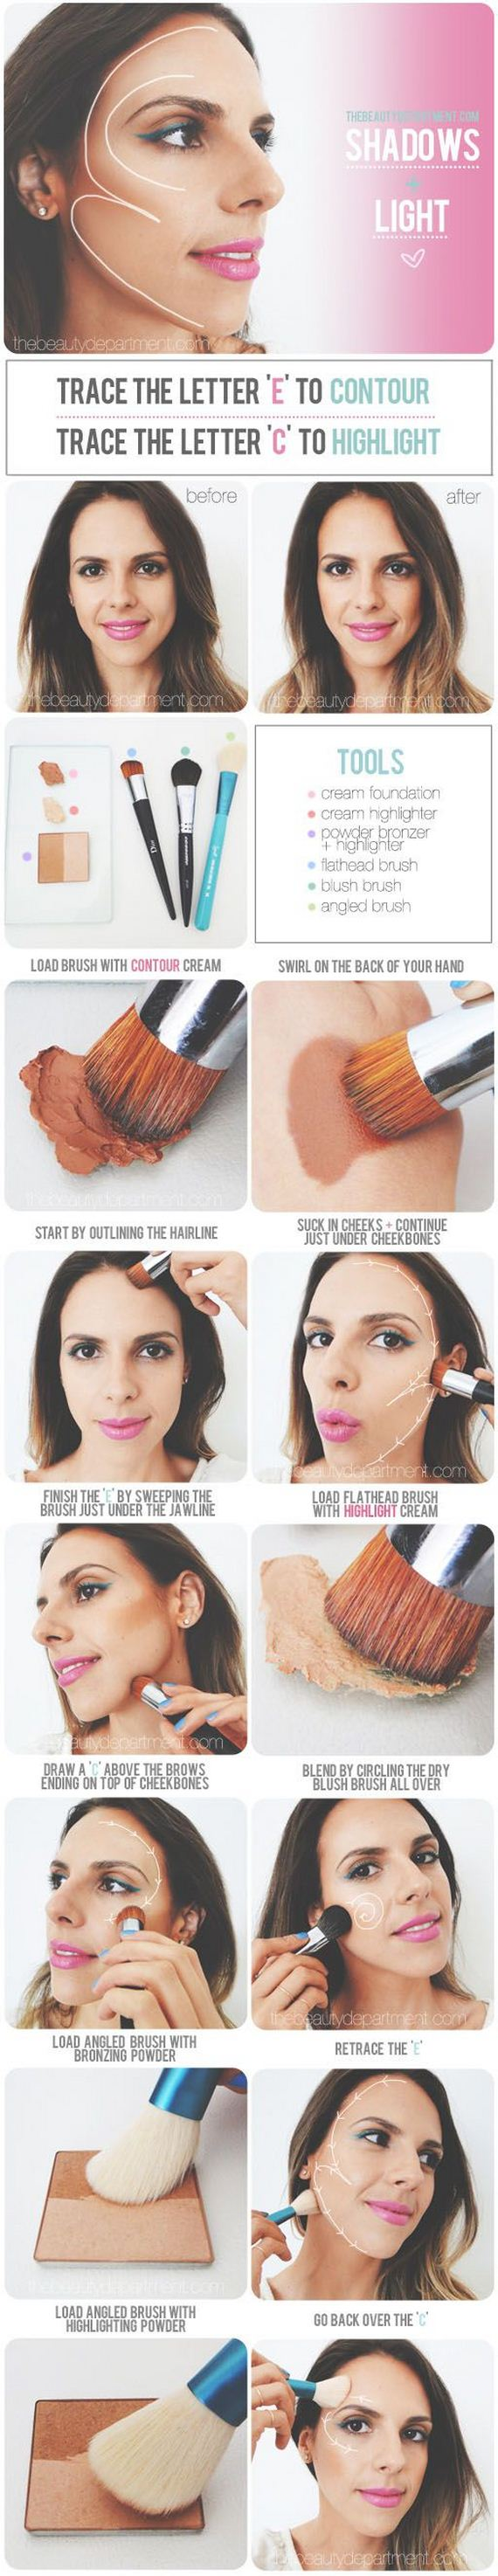 13-makeup-tutorials